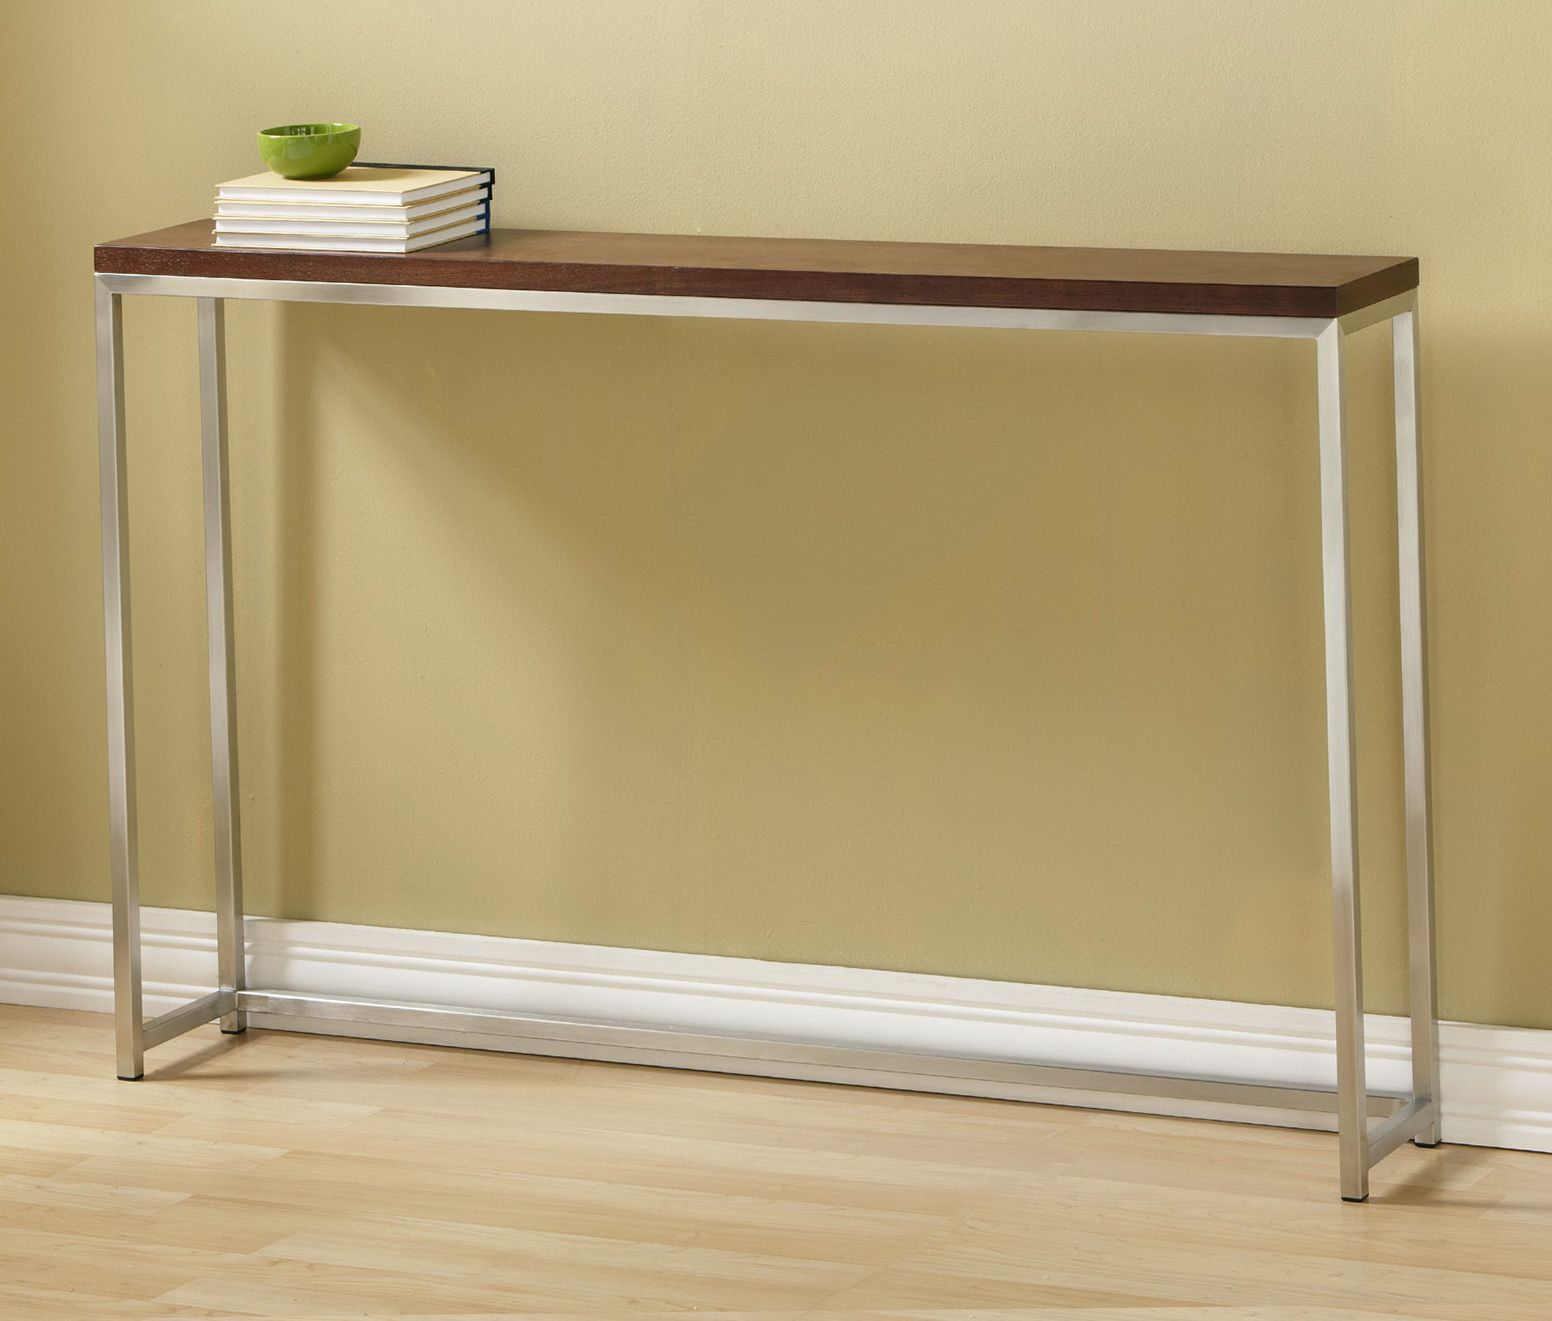 Amazing Tall Console Table With Storage 65 For Your Outdoor